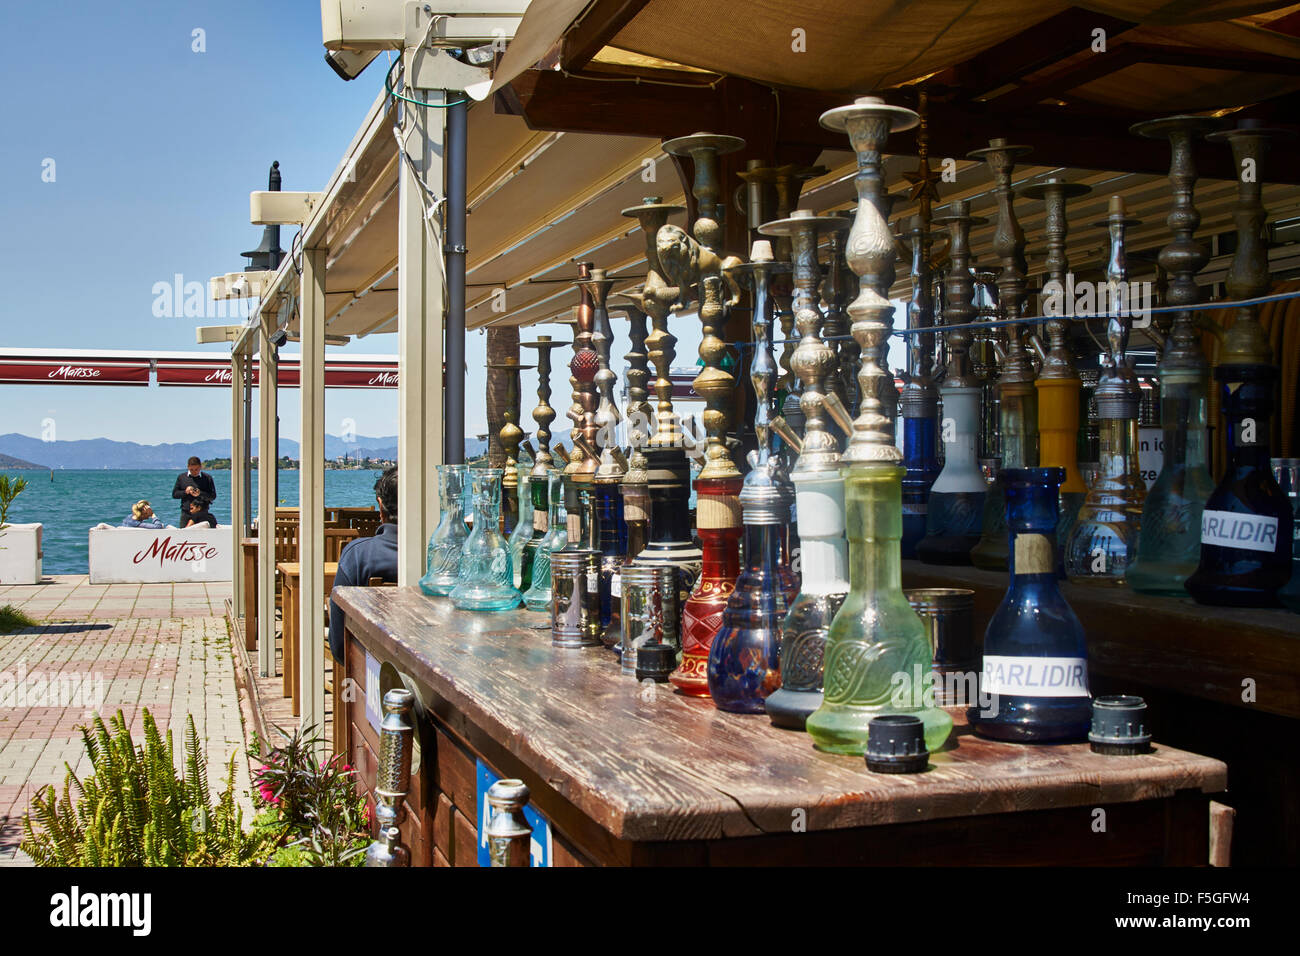 Turkish smoking pipes (hookah) lined up on outdoor bar counter. Stock Photo